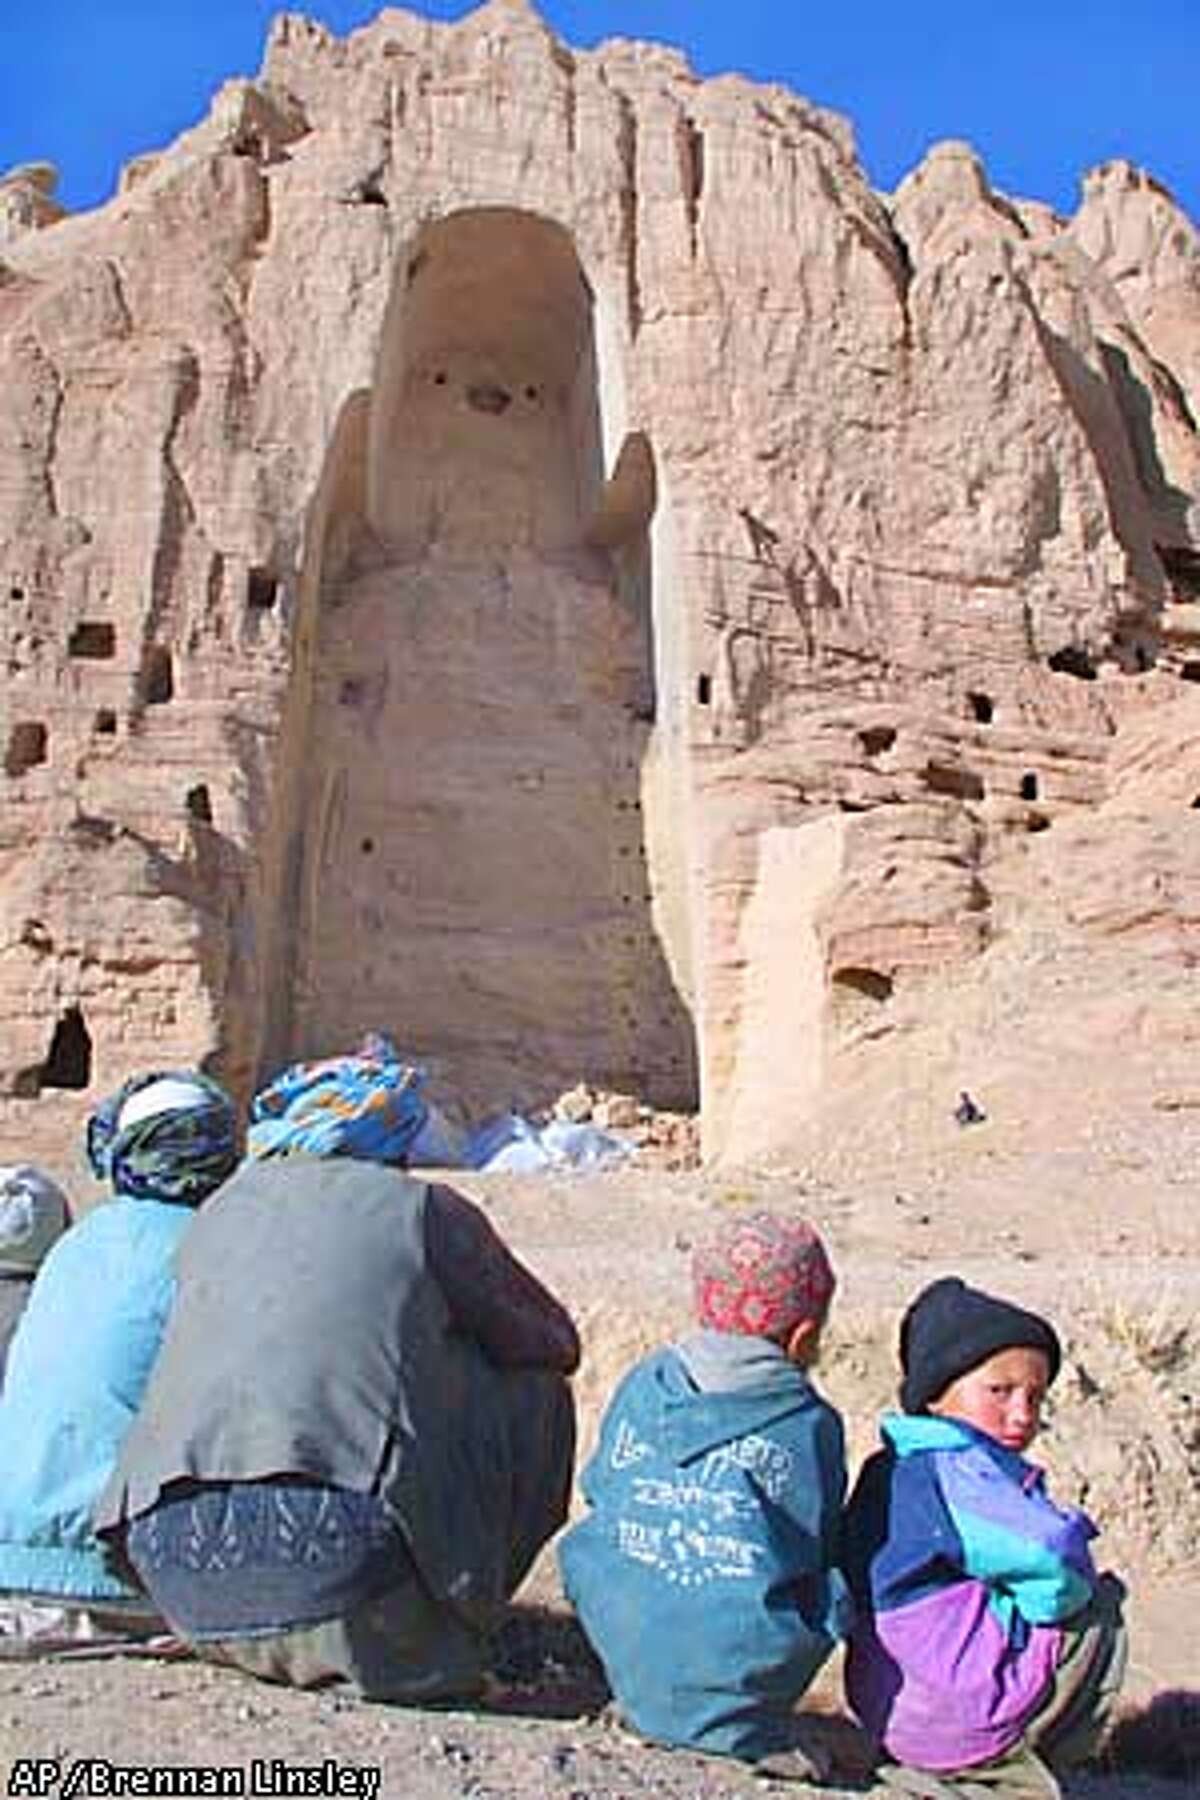 Afghan villagers sit near the hole left behind after an enormous Buddha statue was destroyed by the former Taliban regime, in Bamiyan, northern Afghanistan, Wednesday, Jan. 2, 2002. The Buddha statues detroyed by the Taliban were part of a large network of smaller temples built right into the side of the mountain around one-thousand five-hundred years ago, when Bamiyan played a central role in the region's east-West trade route. The extremist view, not shared among most Islamic scholars but acted upon by the Taliban, held that the Buddha statues very existence violated the Islamic code forbidding idolatry. (AP Photo/Brennan Linsley)